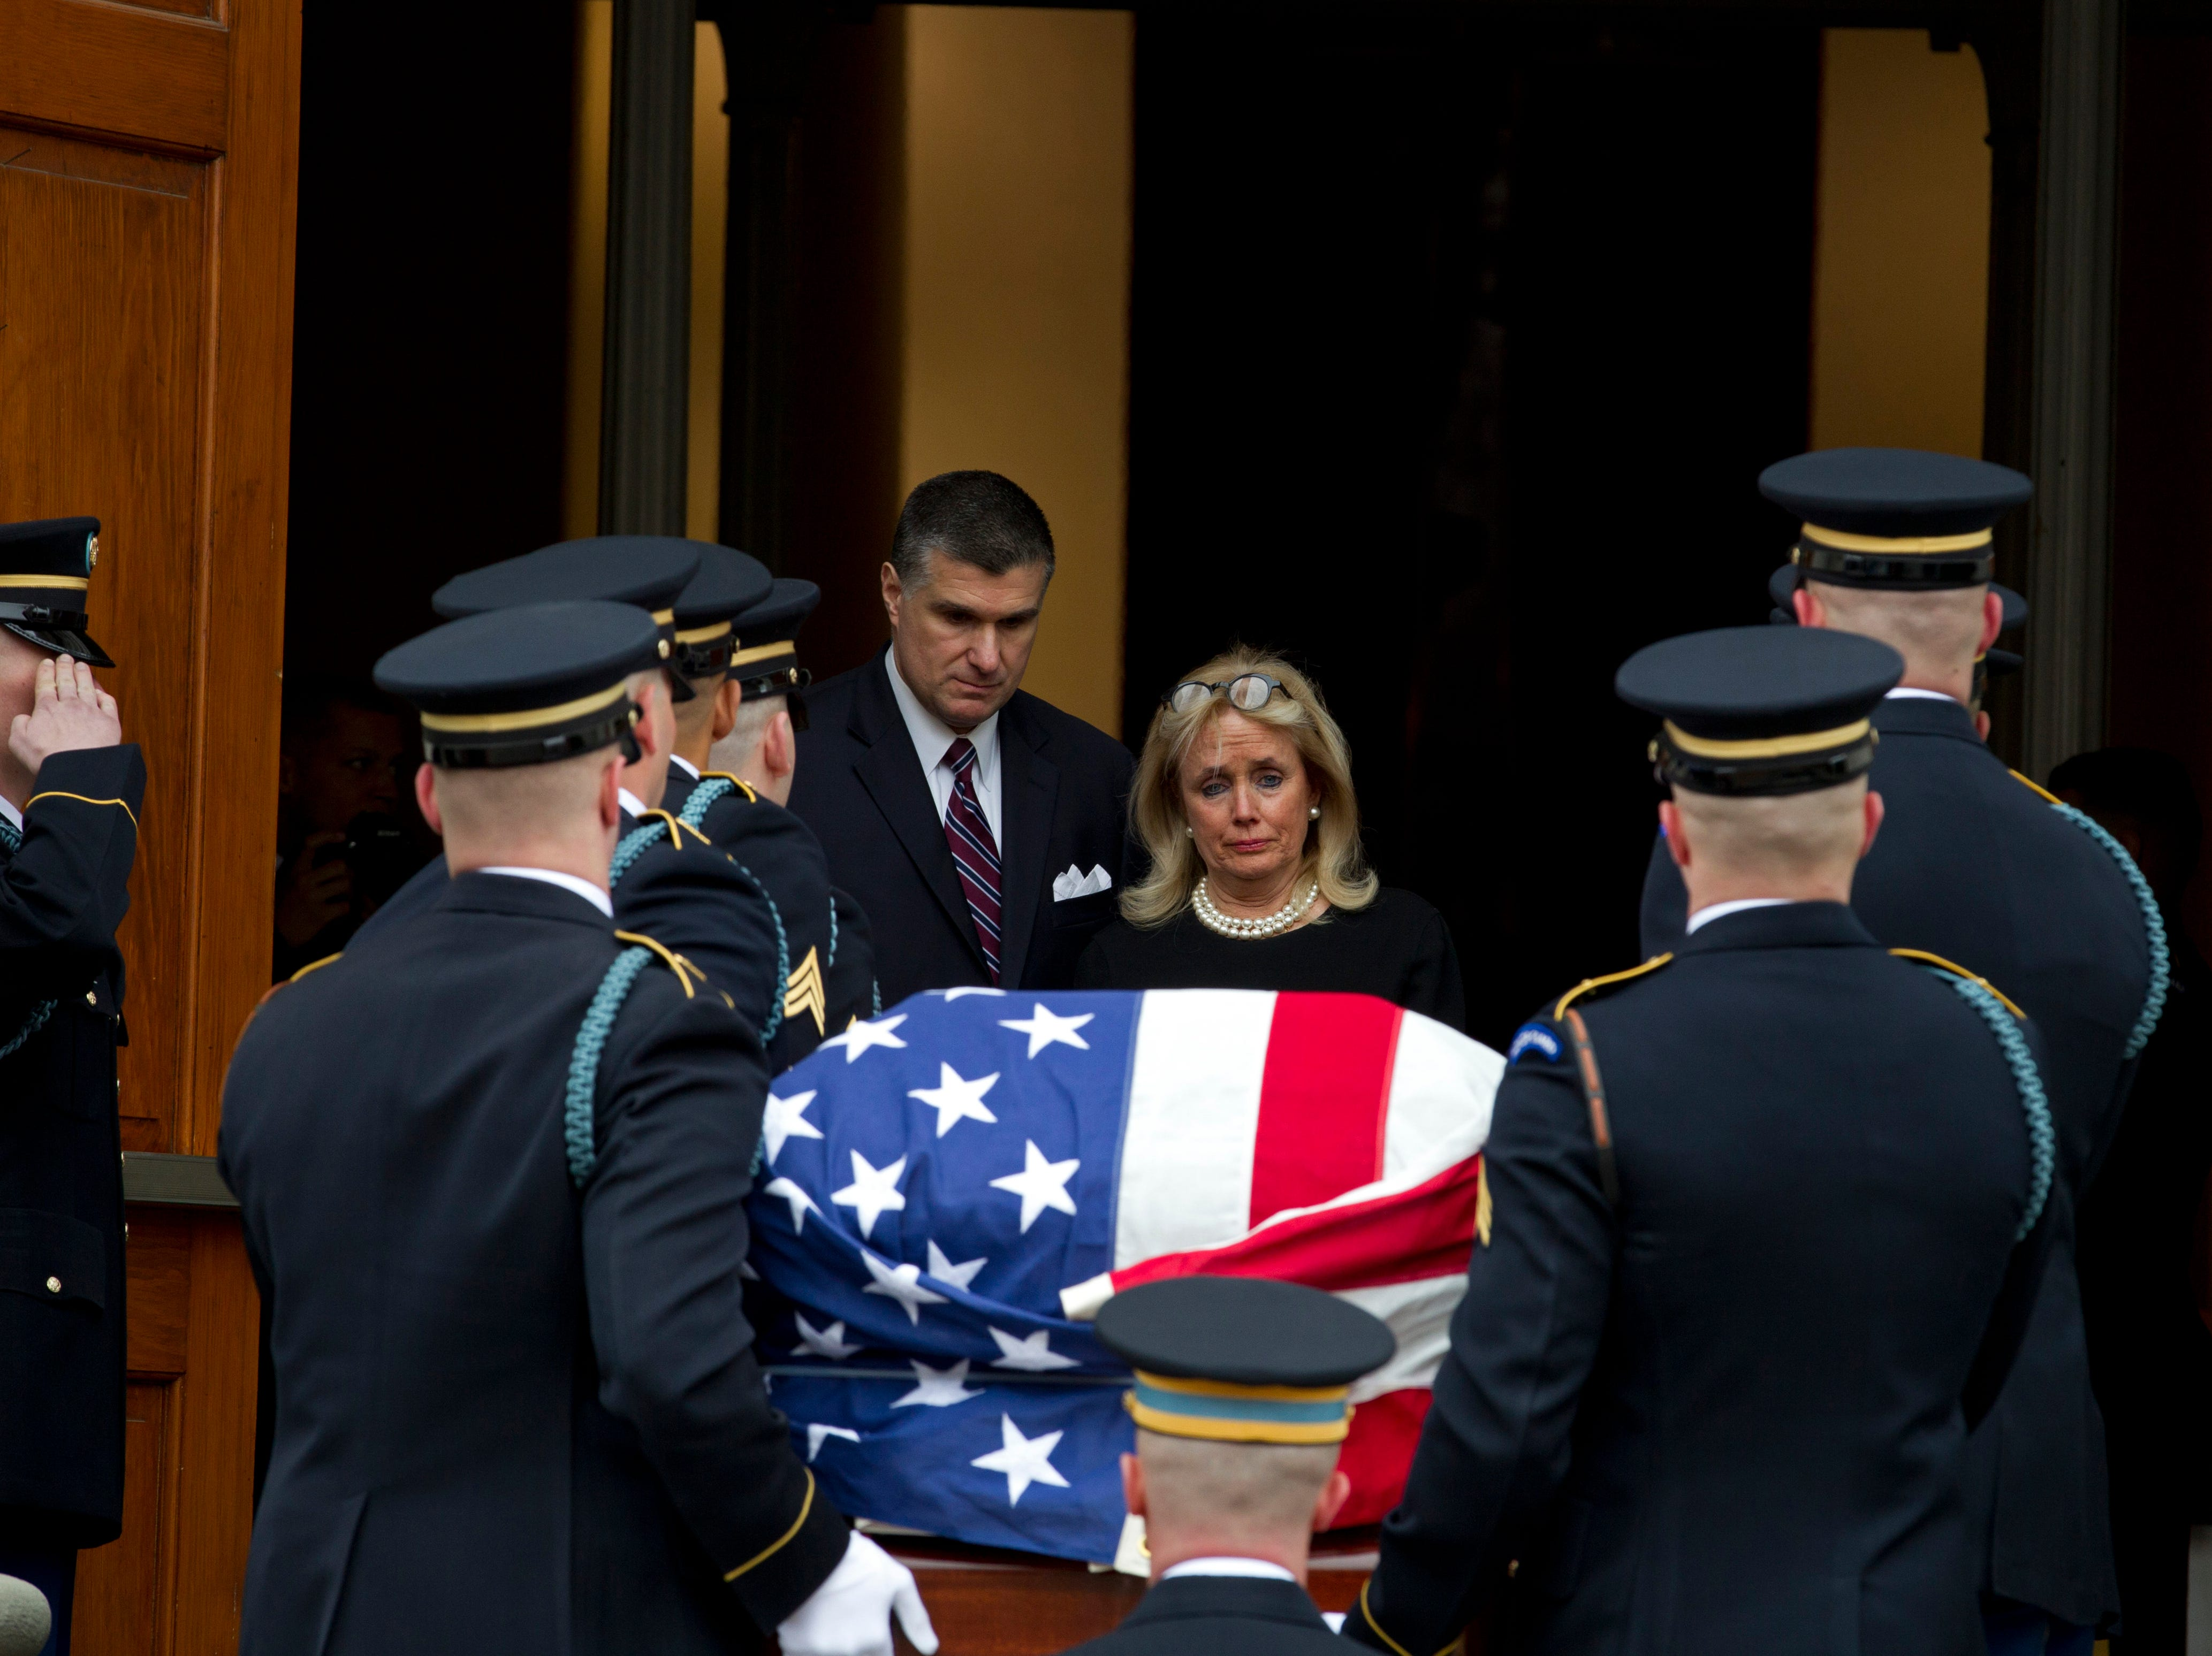 Rep. Debbie Dingell, D-Mich., watches the flag-draped casket of former Rep. John Dingell upon arrival at Holy Trinity Catholic Church.